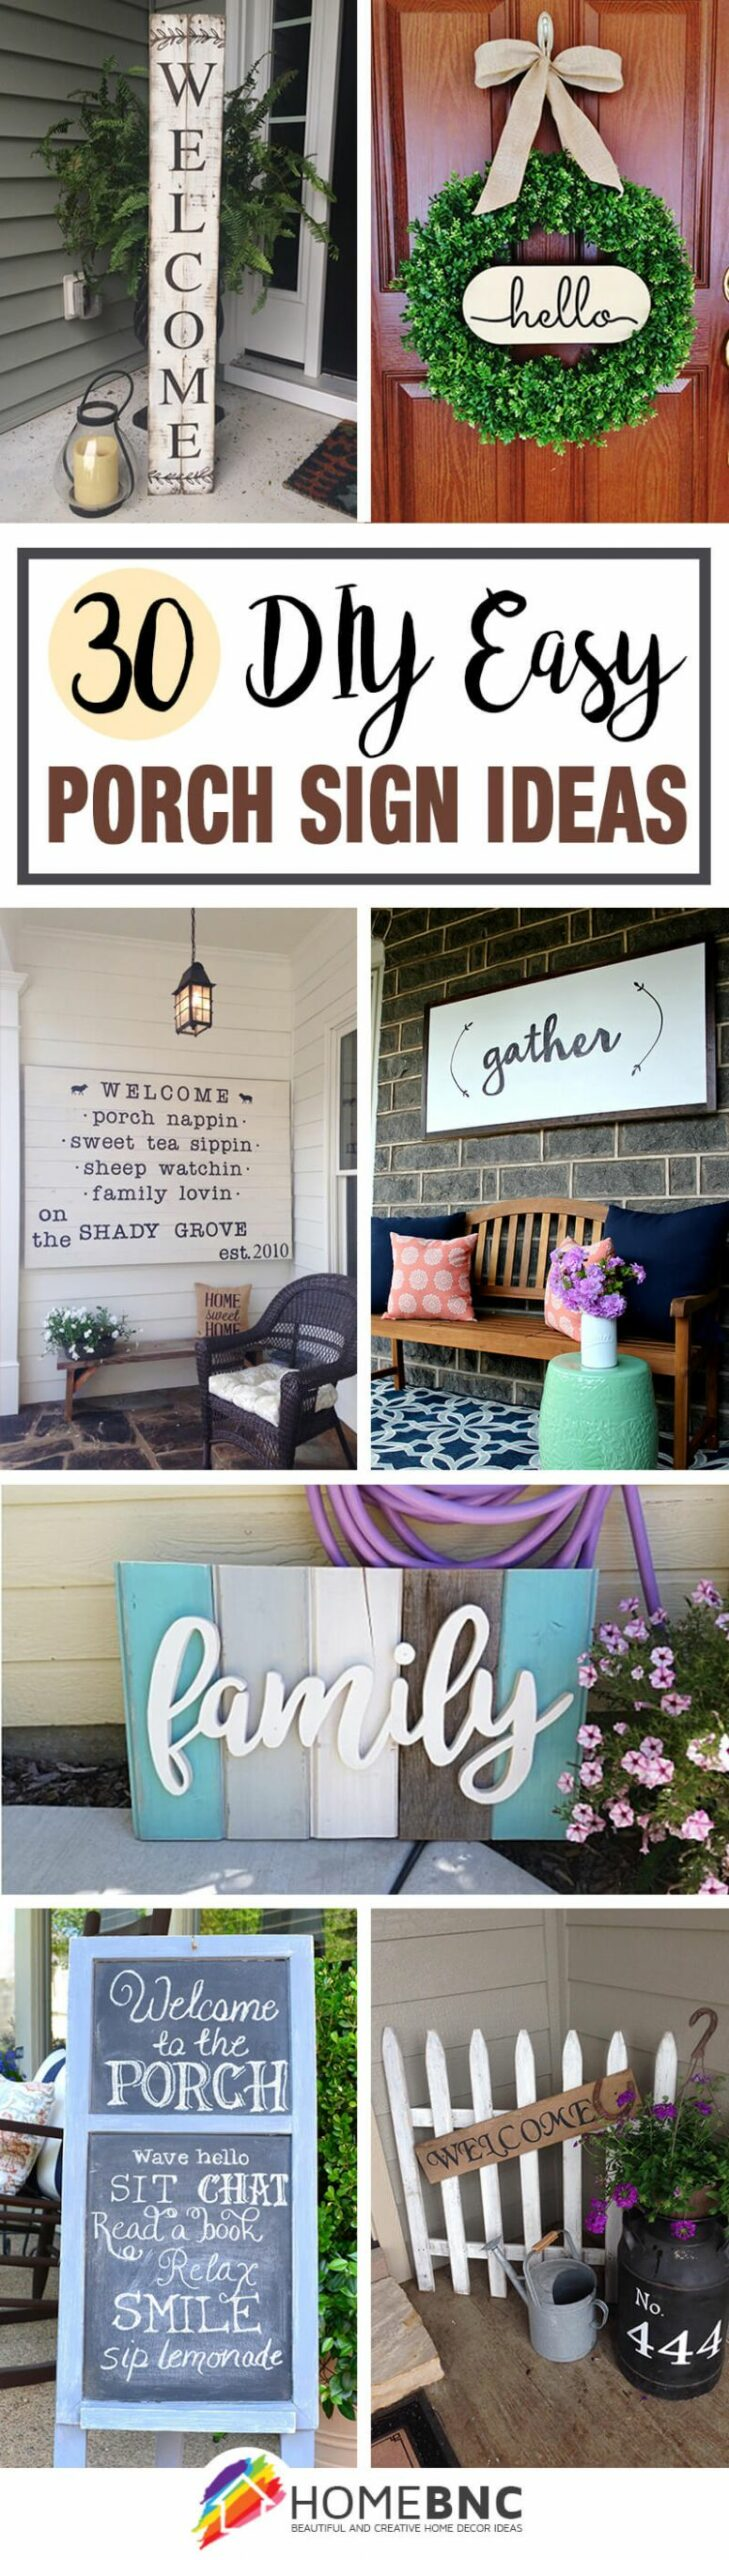 10 Best Front Porch Sign Designs and DIY Ideas for 10 - front porch decor signs